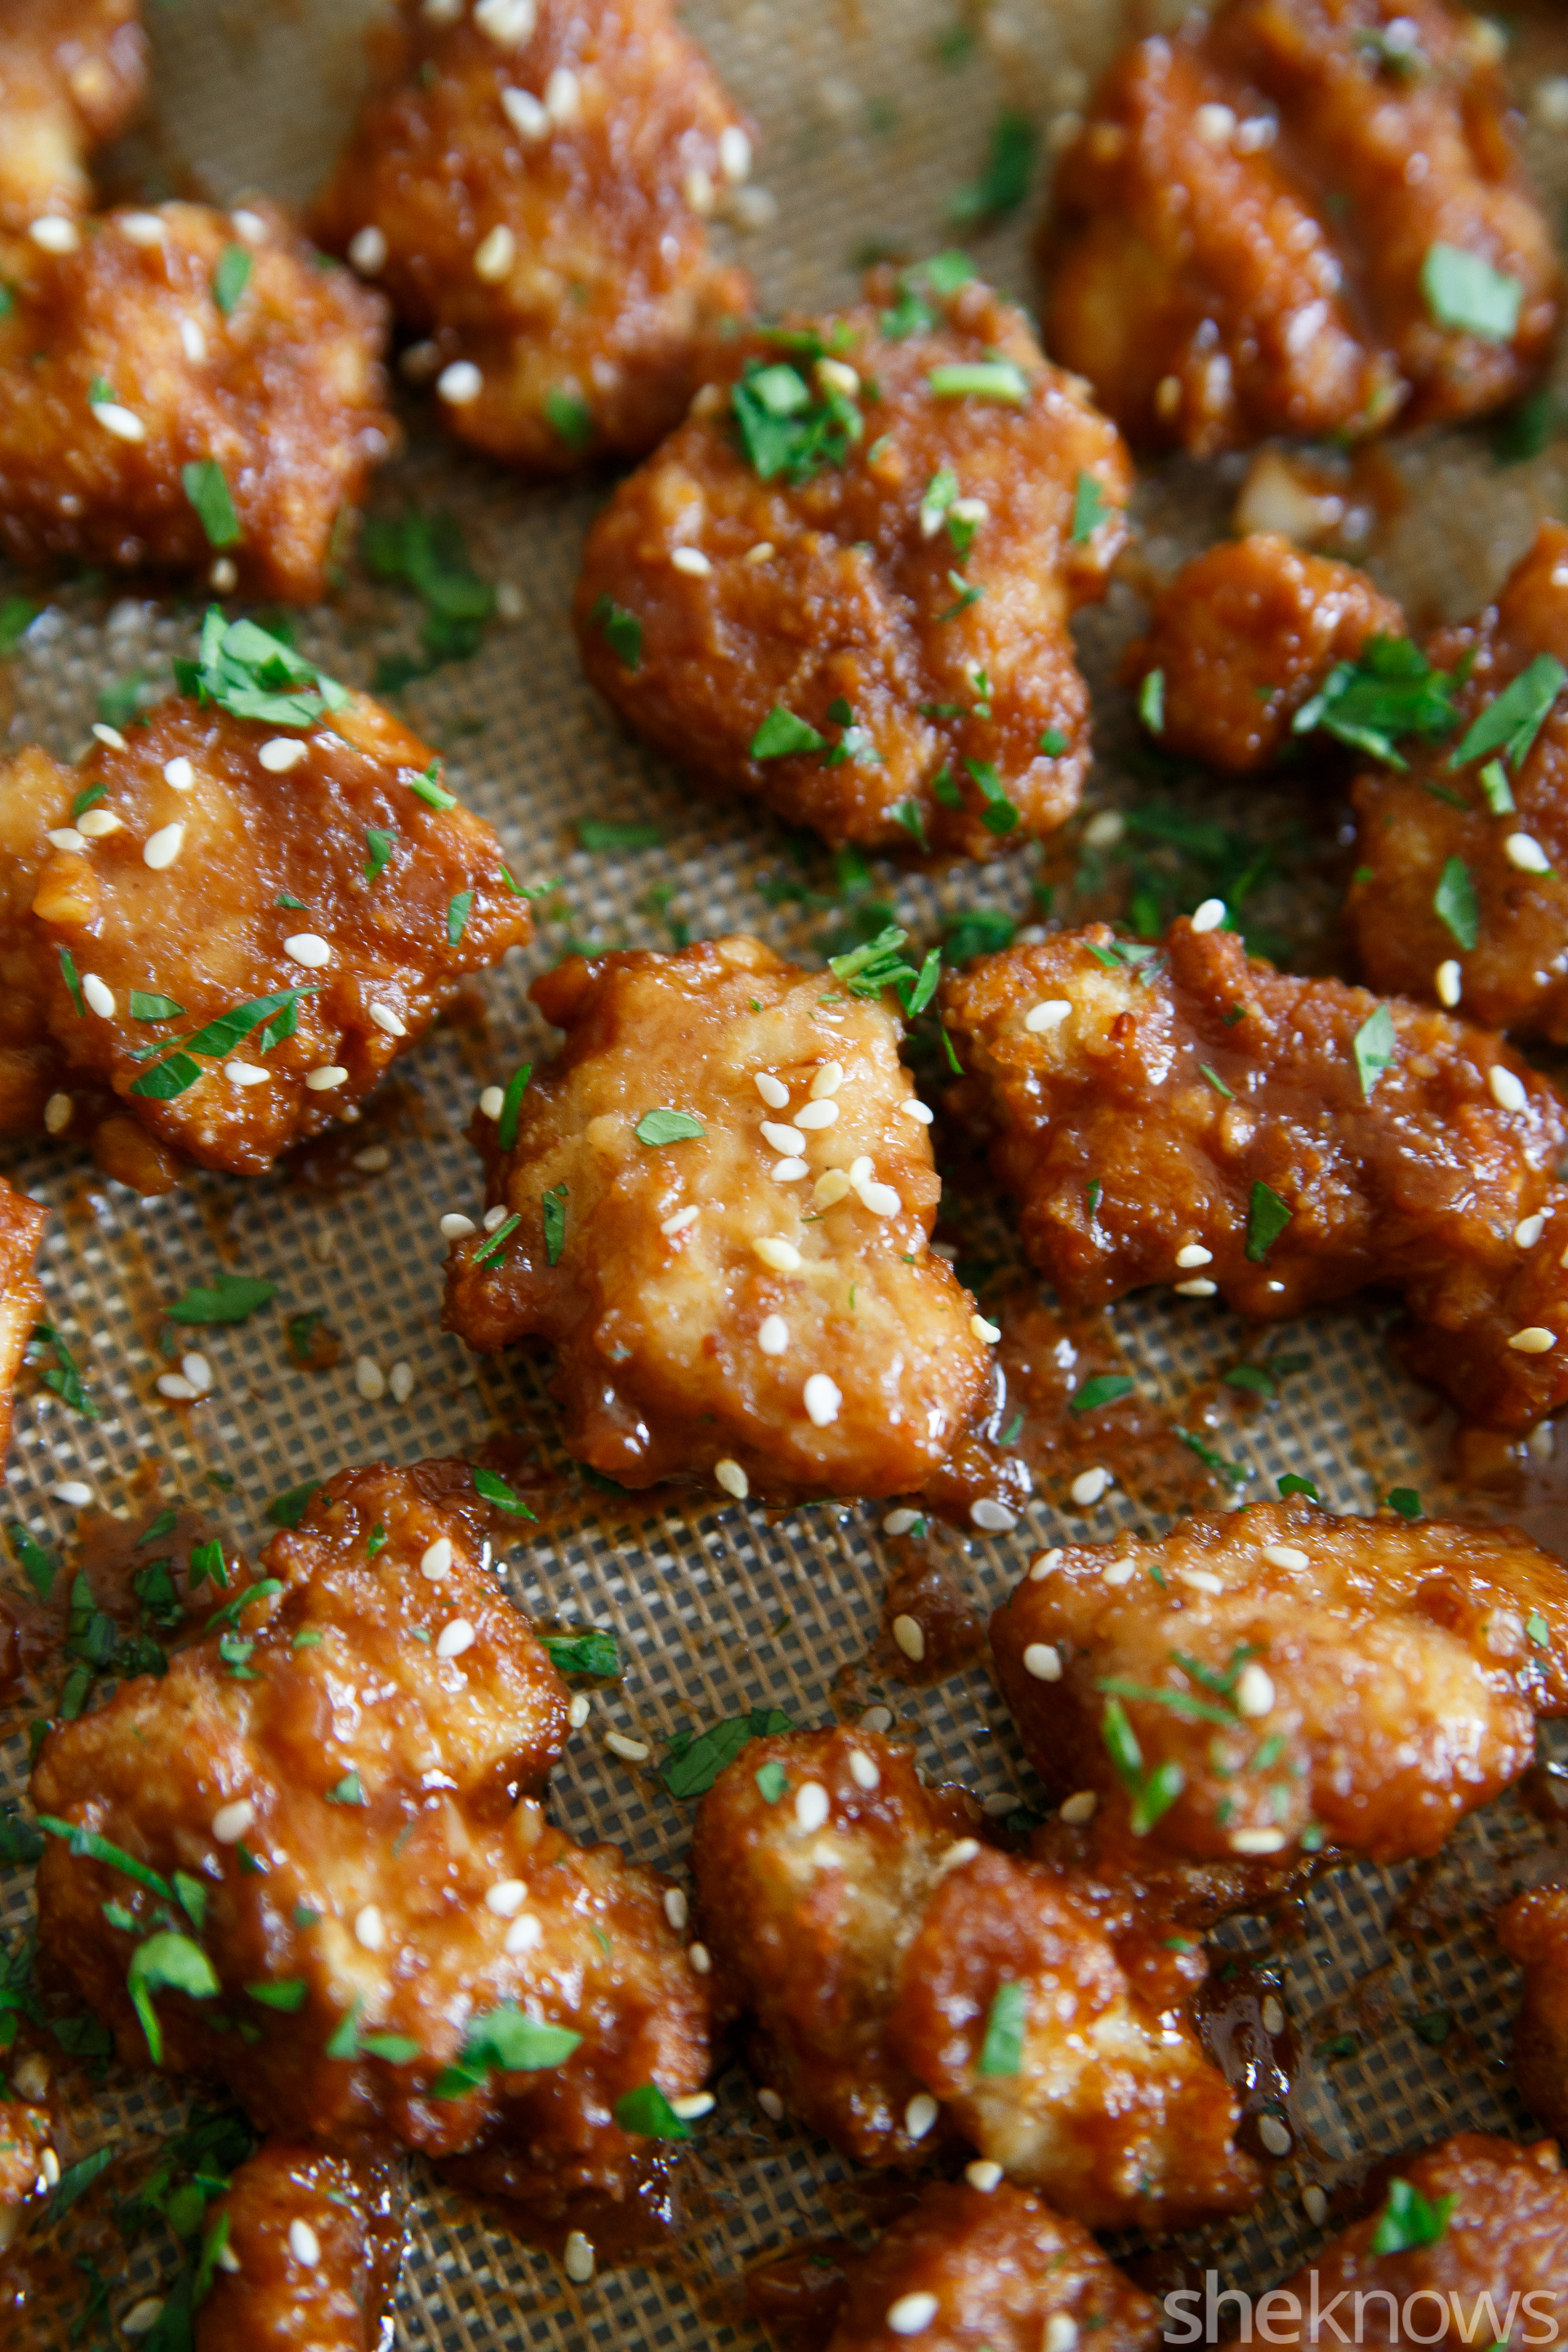 Sticky Asian chicken bites are as addictive as they sound – SheKnows